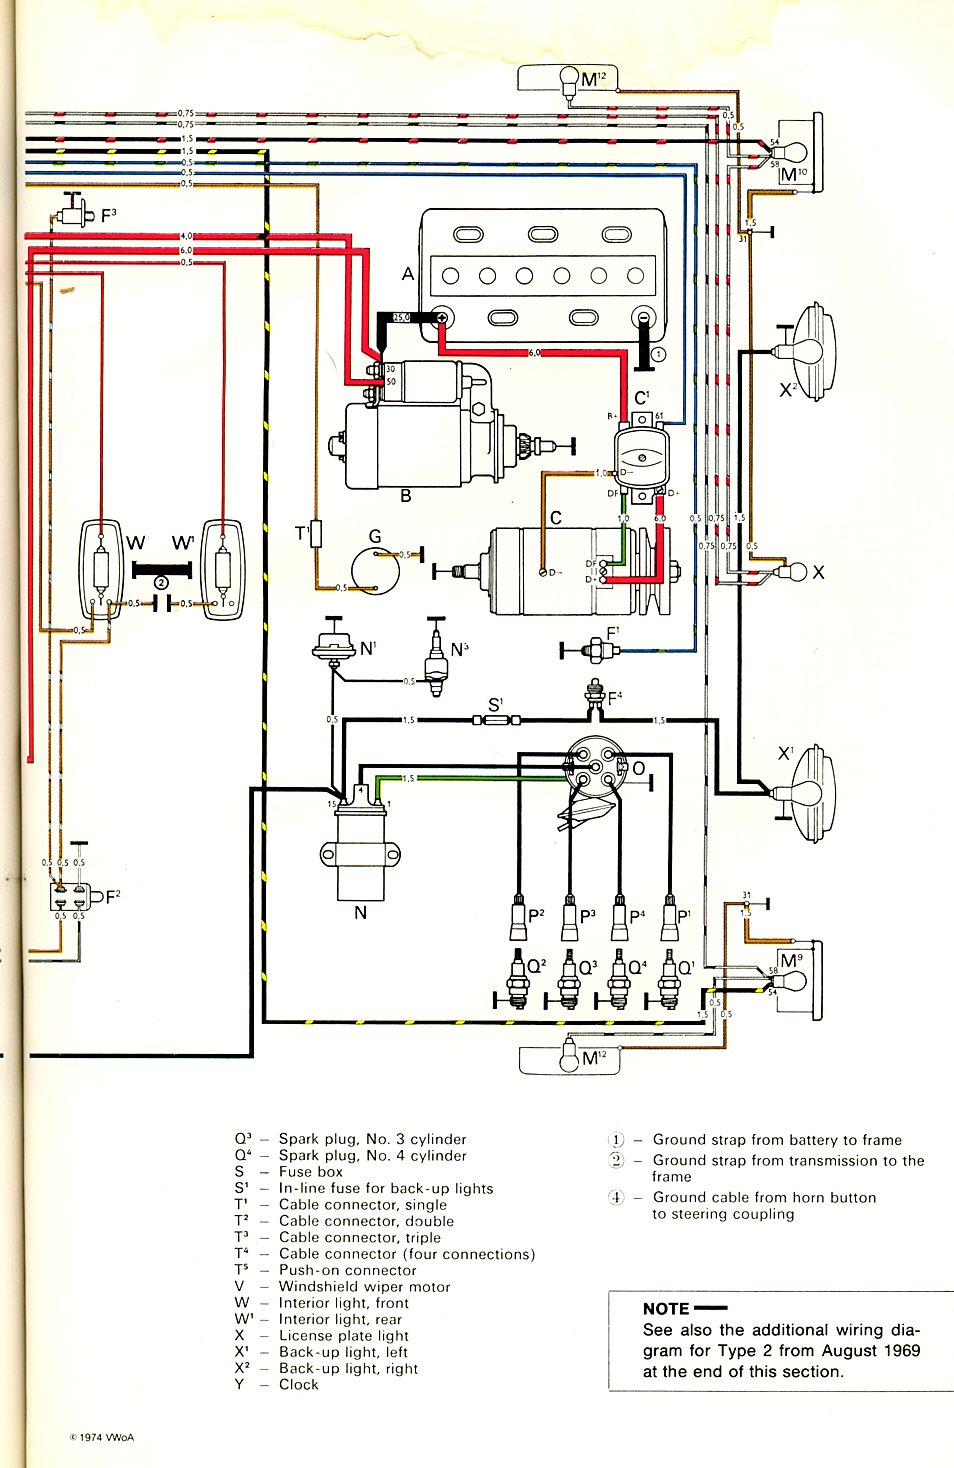 baybus_70b thesamba com type 2 wiring diagrams VW Alternator Hook Up at reclaimingppi.co